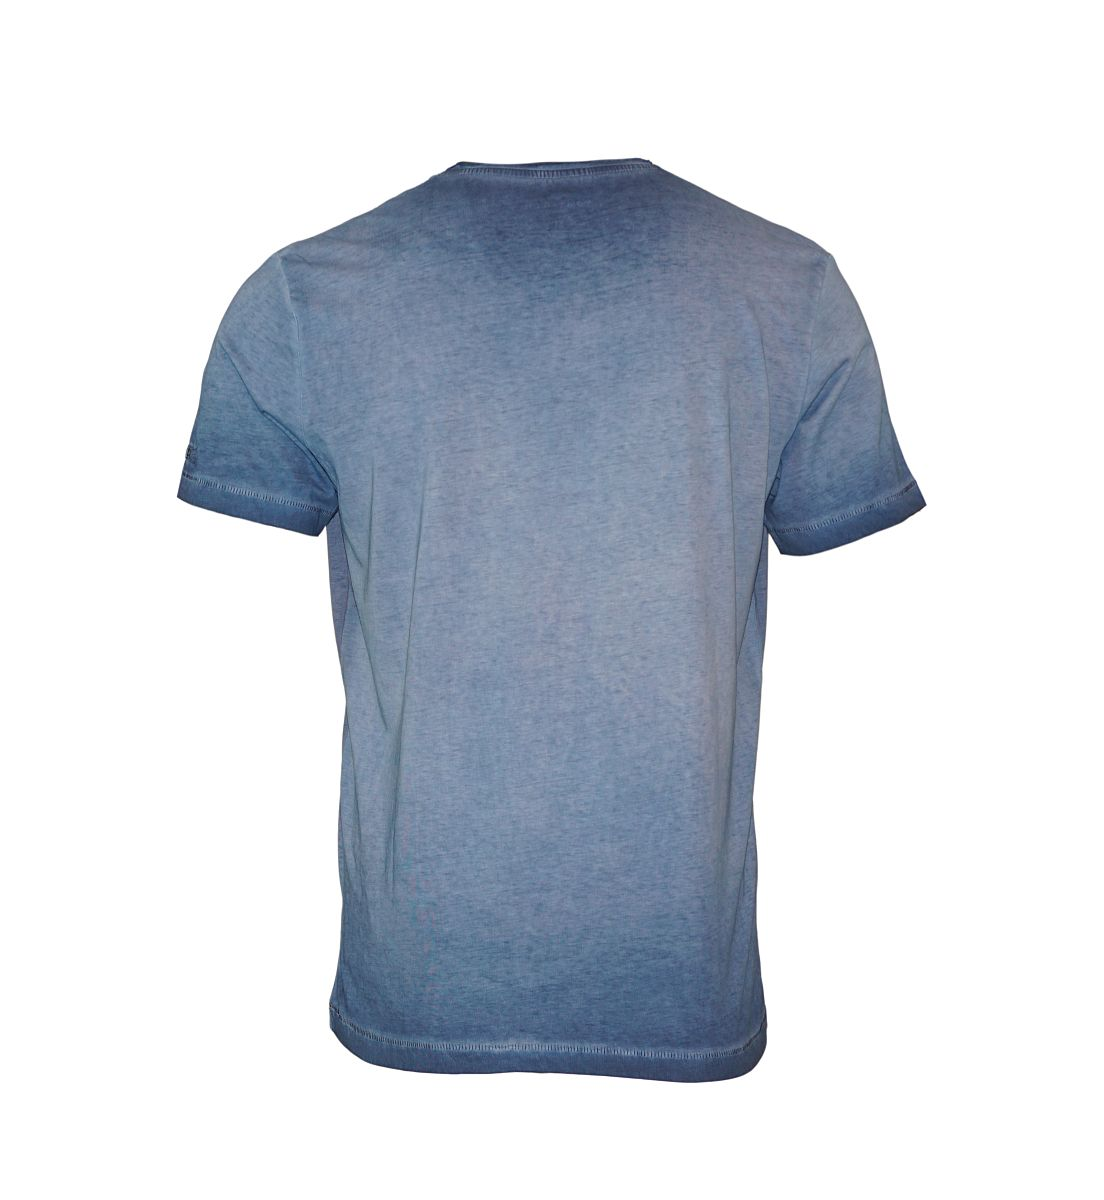 Tom Tailor Shirt T-Shirt Tee-Shirt Motorcycle prints tee blau 10340739910 6968